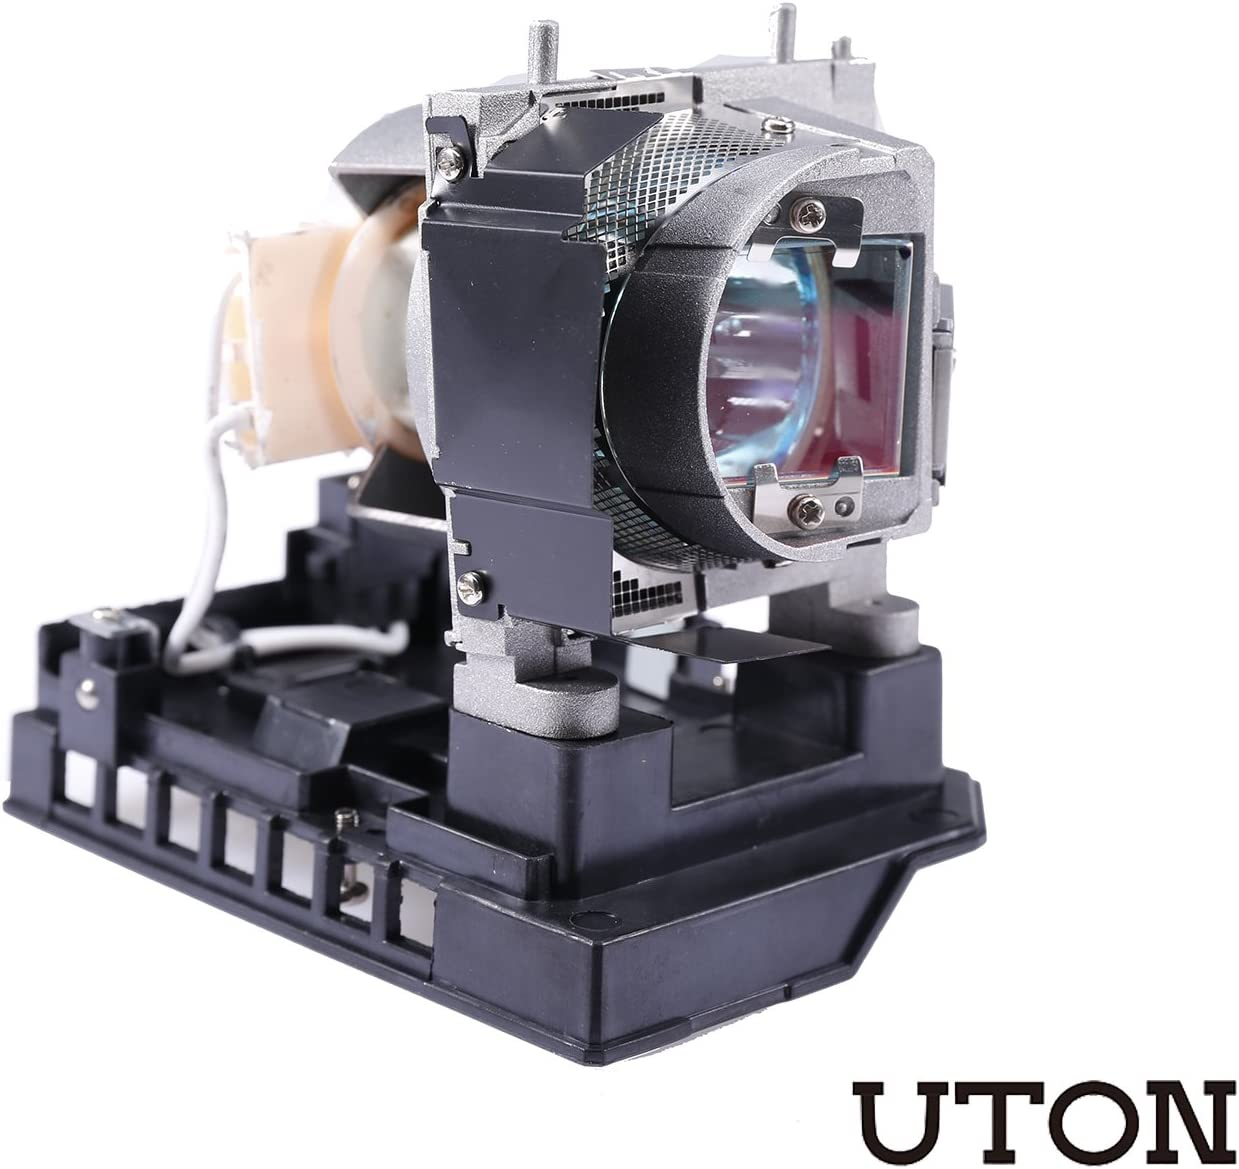 20-01501-20 Replacement Projector Lamp for SMARTBOARD 480i5 880i5 885i5 SB880 SLR40Wi UF75 UF75w Unifi 75 Unifi 75w Projector